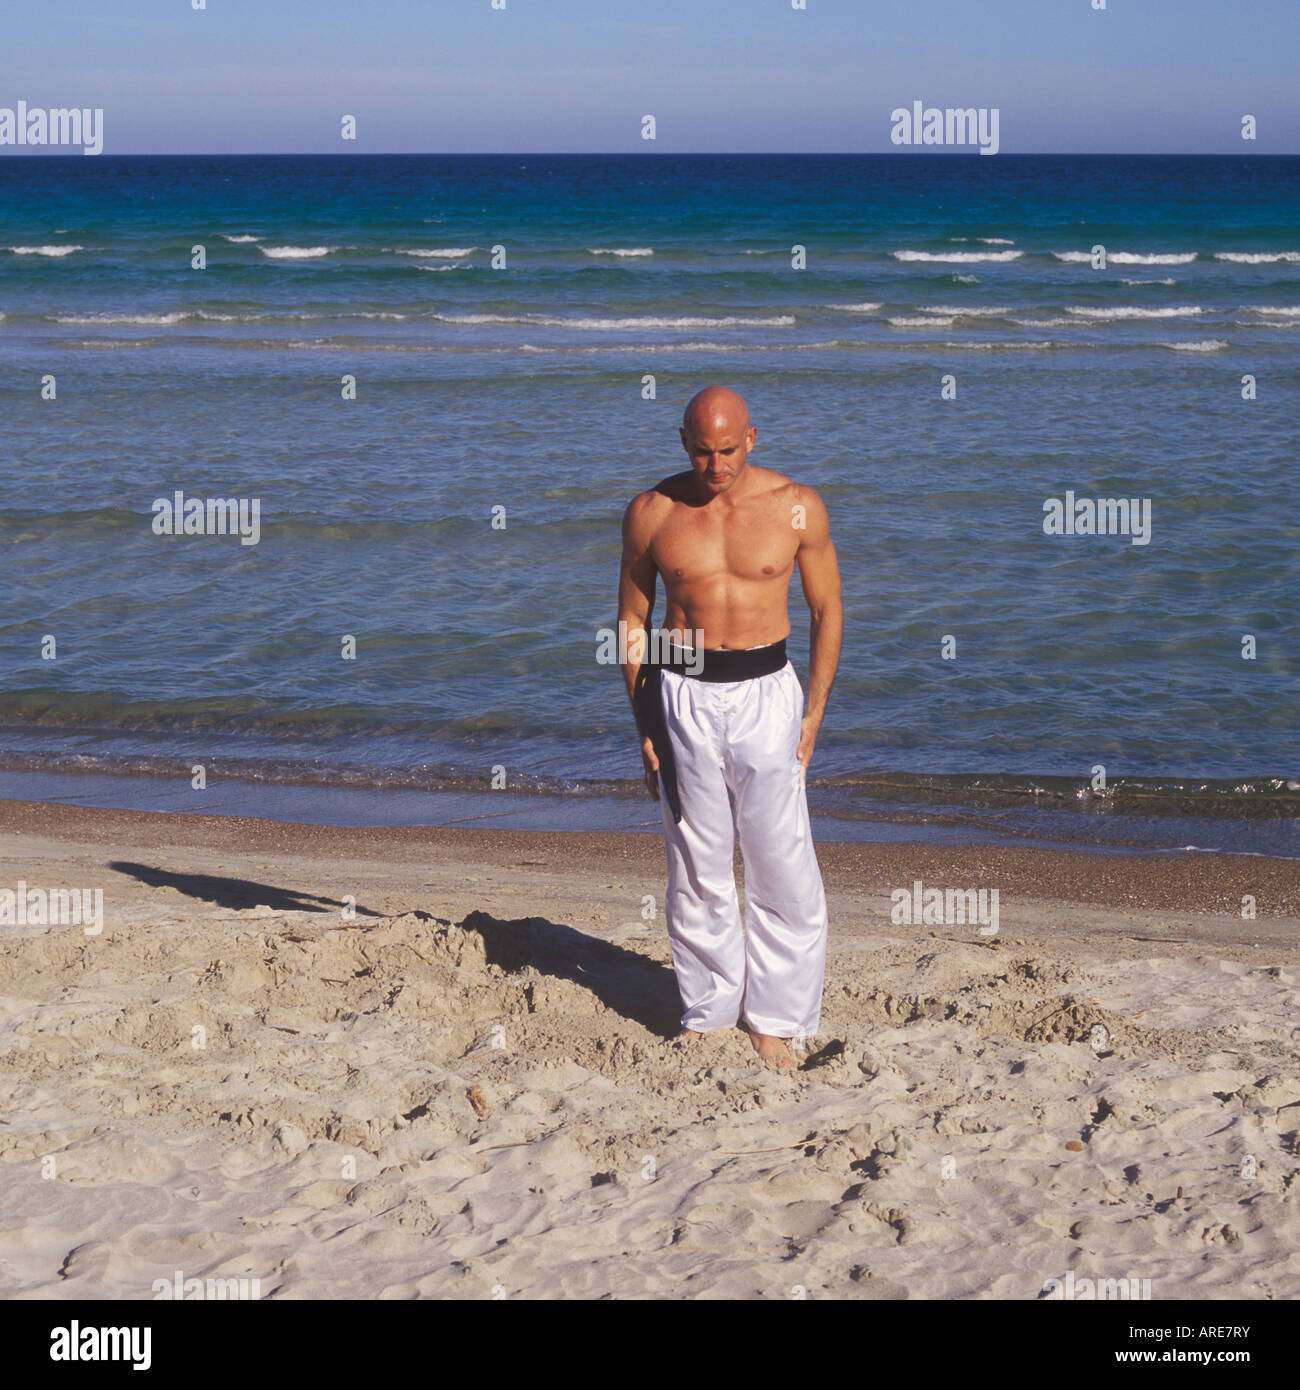 Professional Tai Chi and Kong Fu instructor undertaking workout on beach in Mallorca, Balearic Islands, Spain. - Stock Image